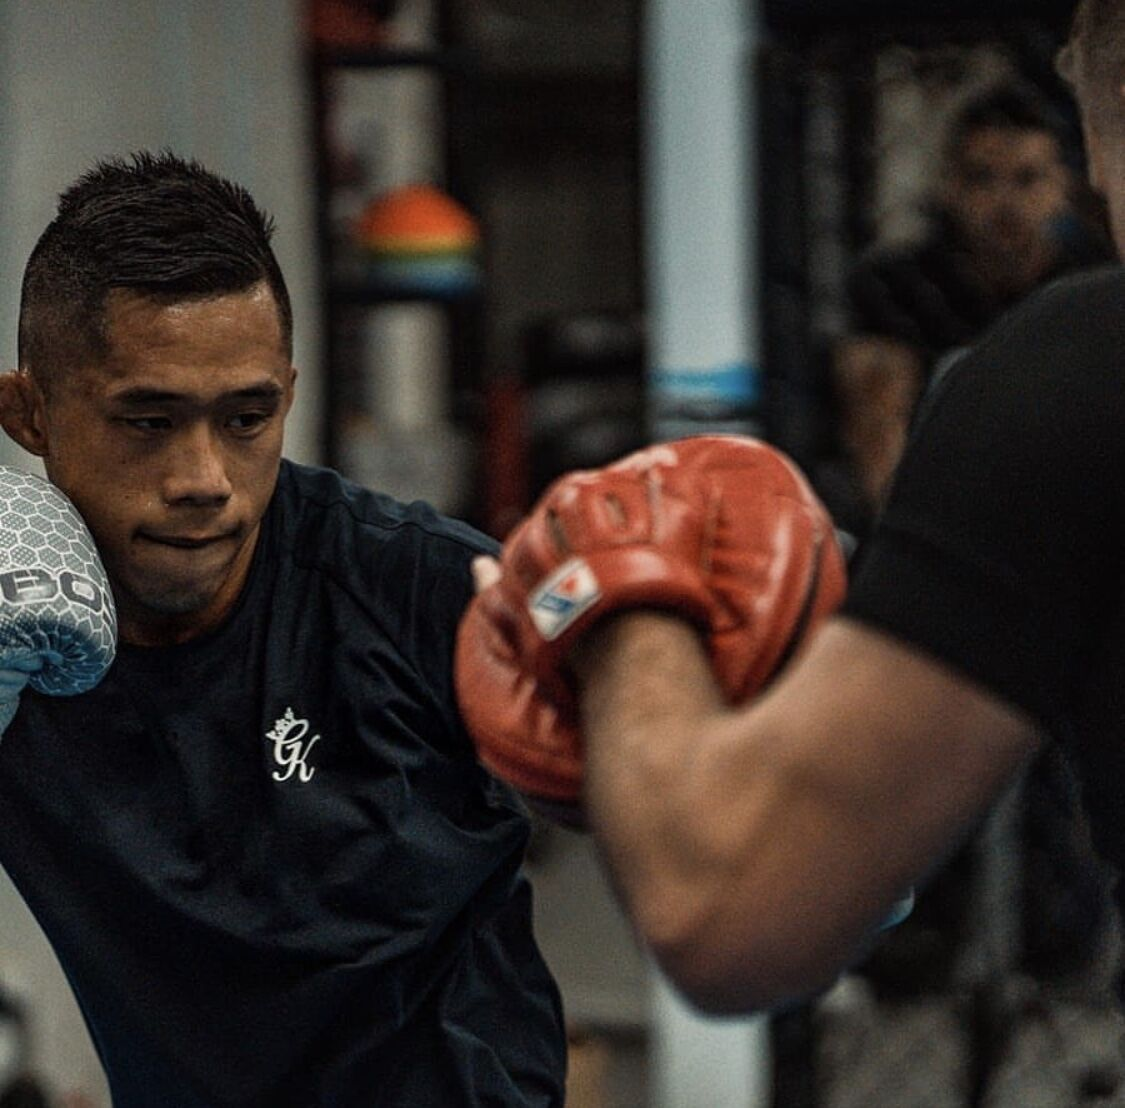 'EVERYDAY in every way, Im getting BETTER and BETTER' #GKFD #MMA #ONEChampionship